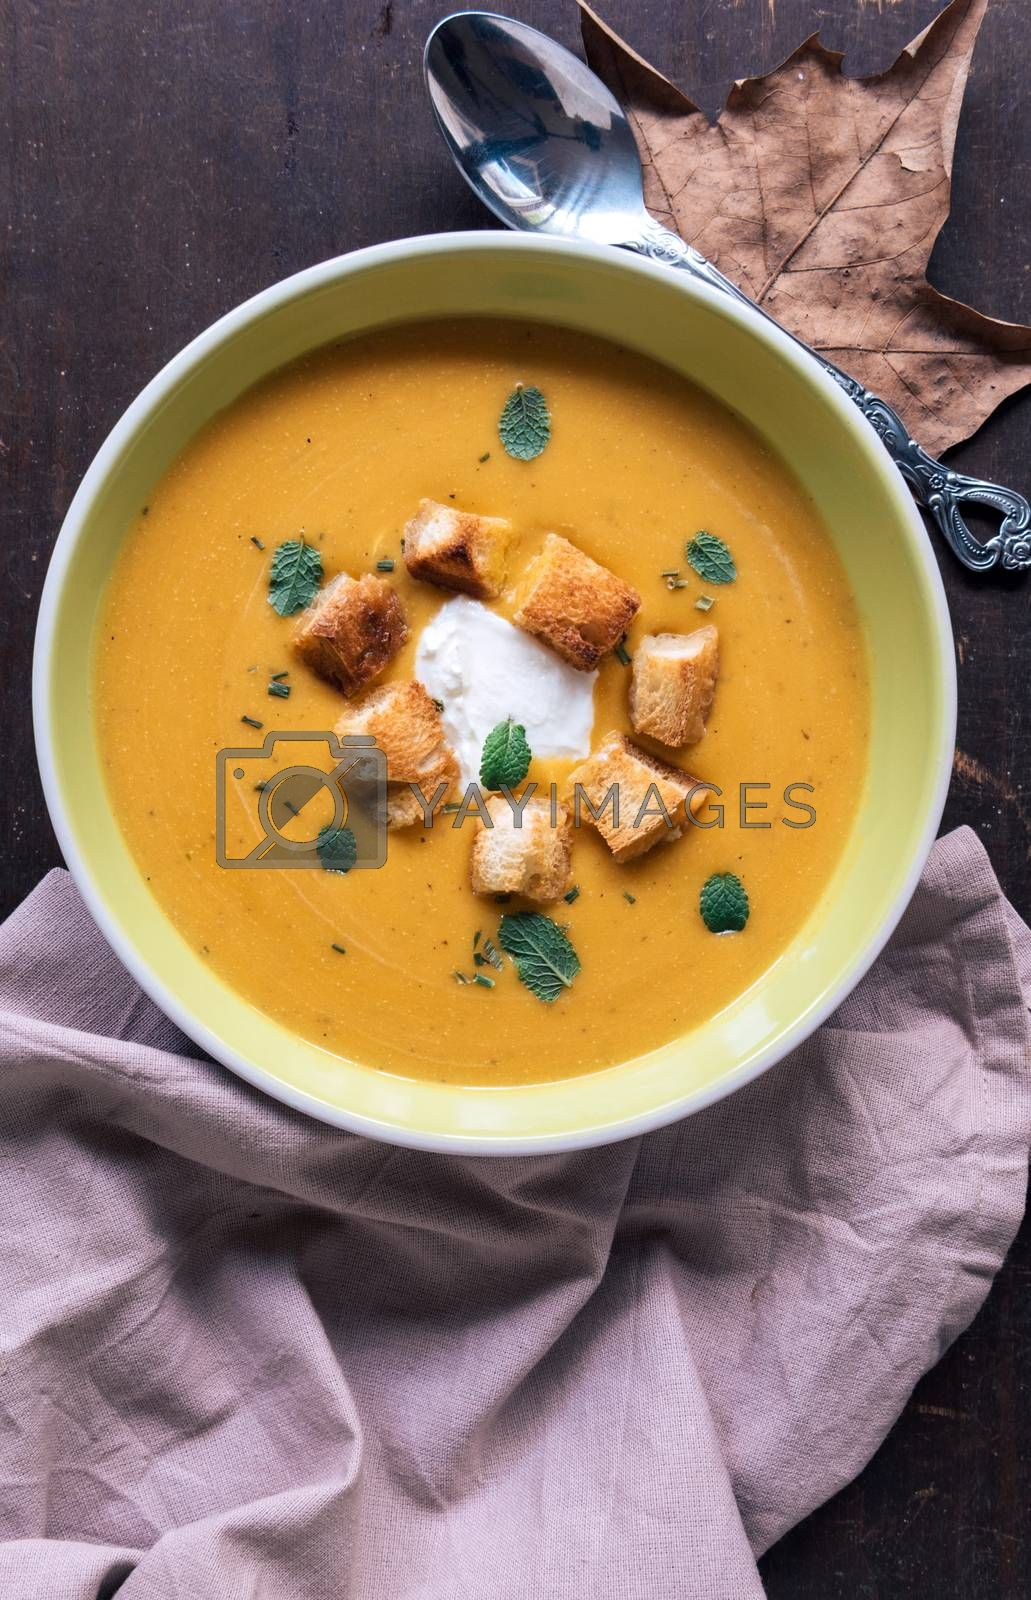 Served homemade pumpkin soup with milk cream and croutons bread in plate on wooden background